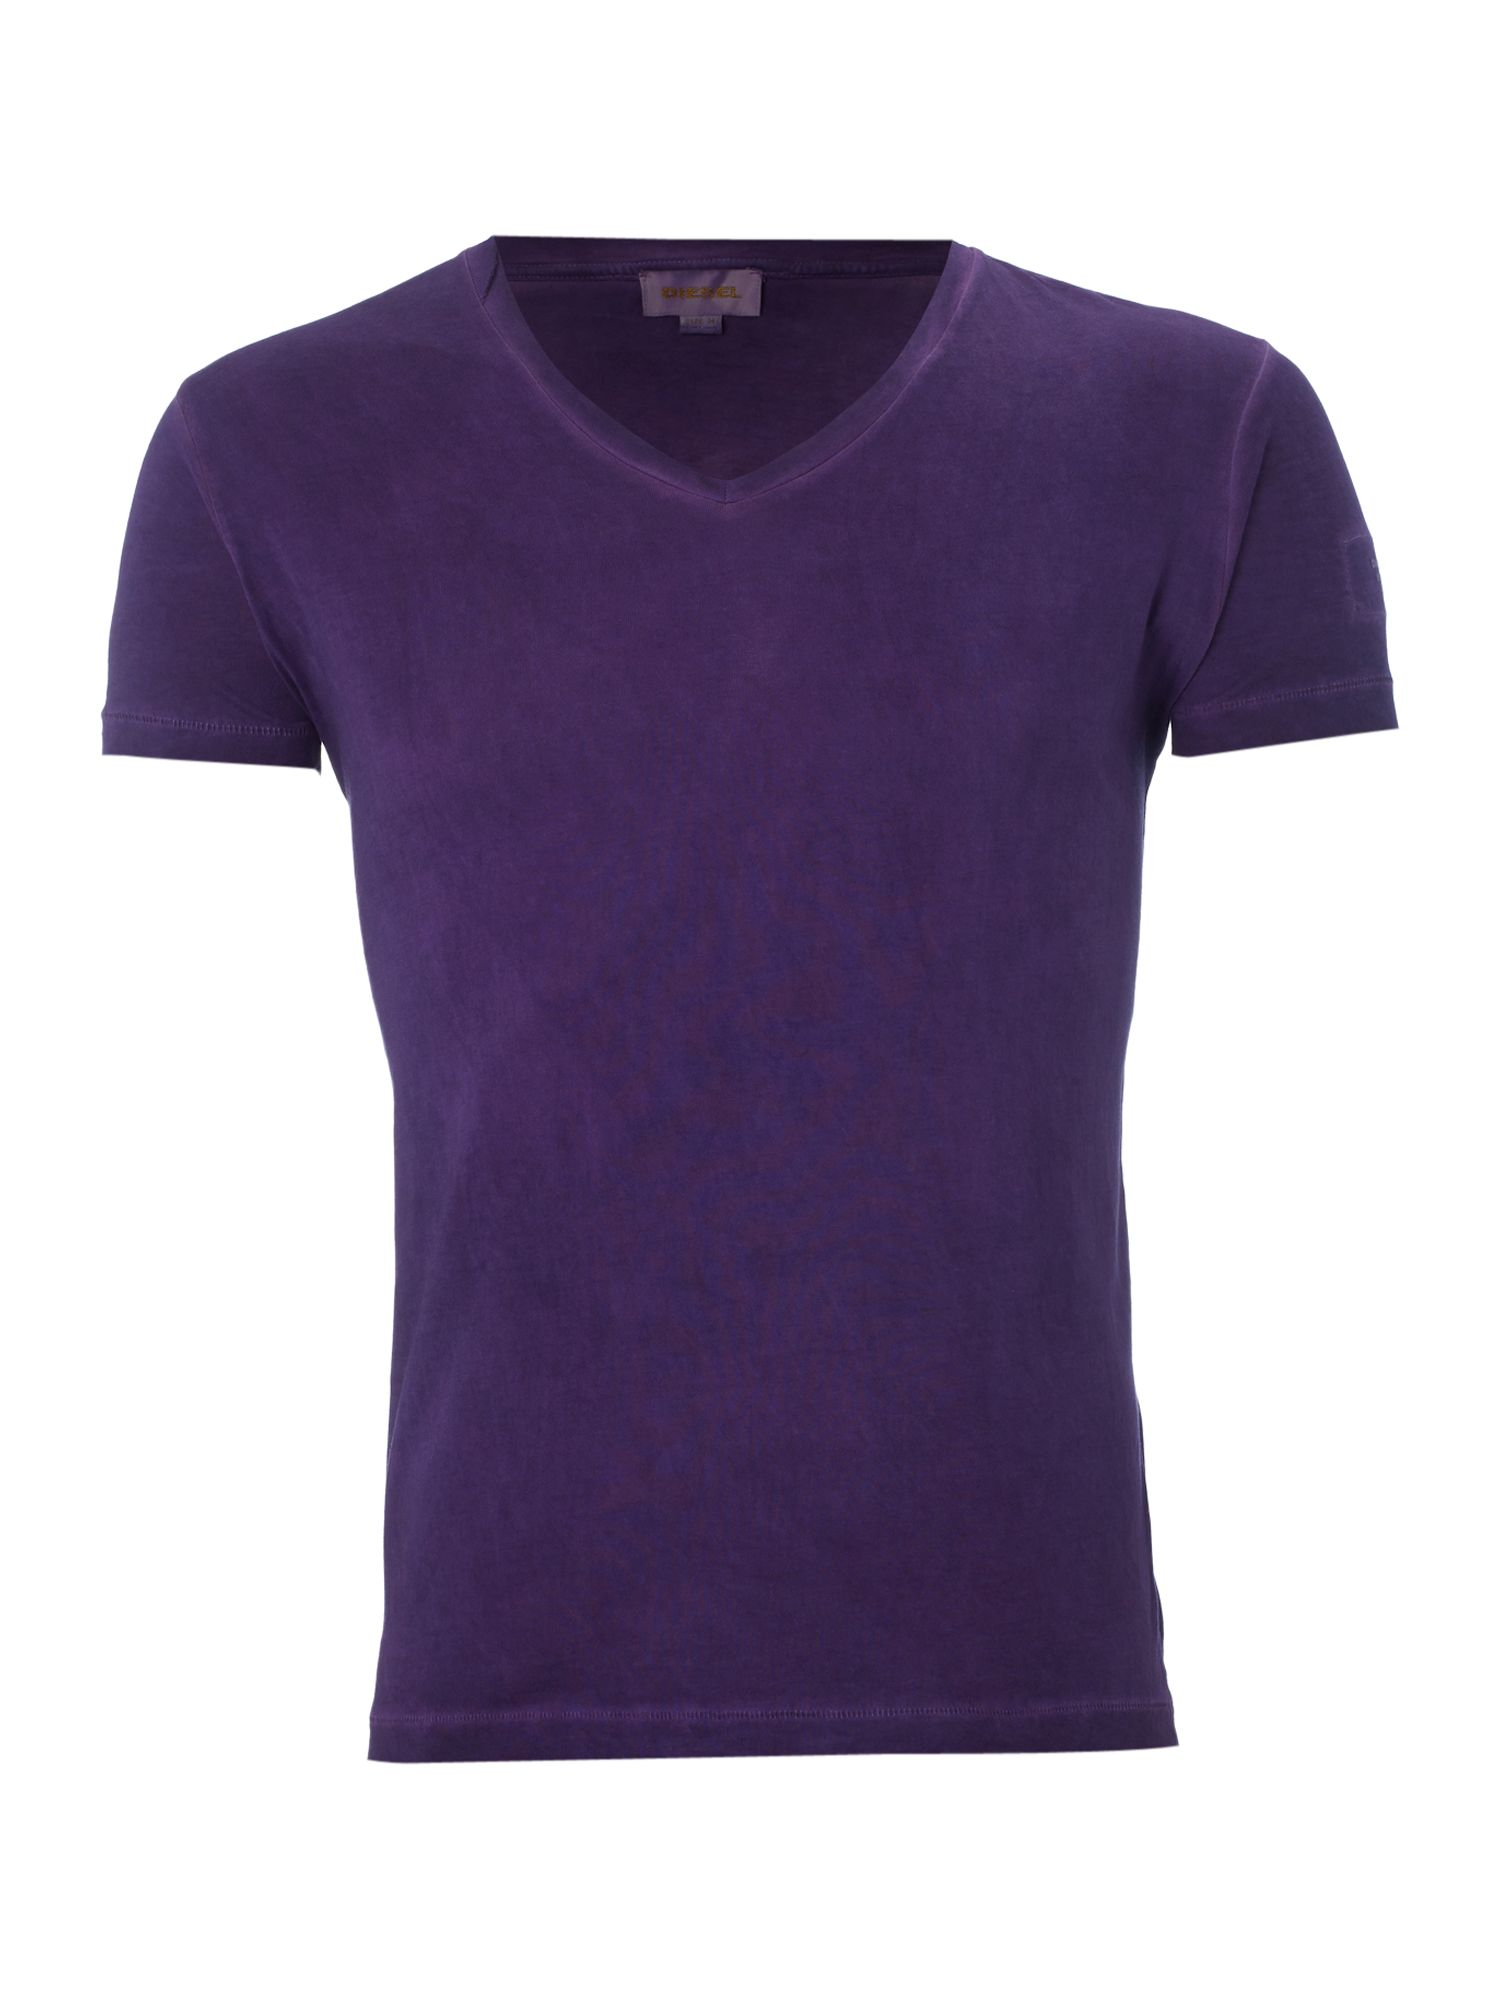 Diesel V-neck washed T-shirt - Purple XL,XL,XL product image